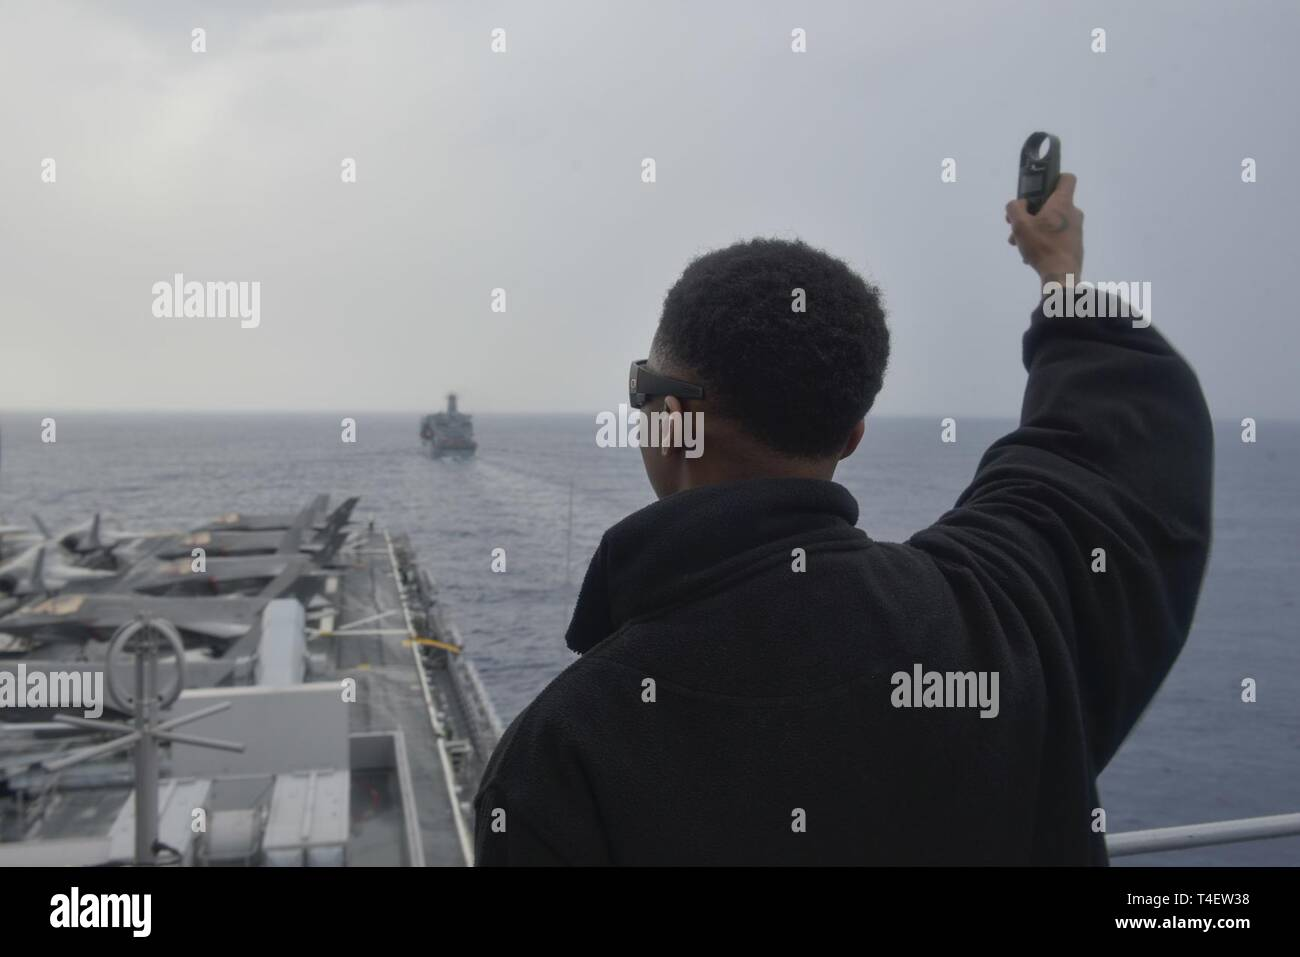 SOUTH CHINA SEA (April 4, 2019) - Aerographer's Mate Airman Braxton Reese, from Jacksonville, Fla., measures wind speed onboard the amphibious assault ship USS Wasp (LHD 1) during a replenishment-at-sea with the fleet replenishment oiler USNS Pecos (T-AO 197) during Exercise Balikatan 2019. Exercise Balikatan, in its 35th iteration, is an annual U.S., Philippine military training exercise focused on a variety of missions, including humanitarian assistance and disaster relief, counter-terrorism, and other combined military operations. - Stock Image